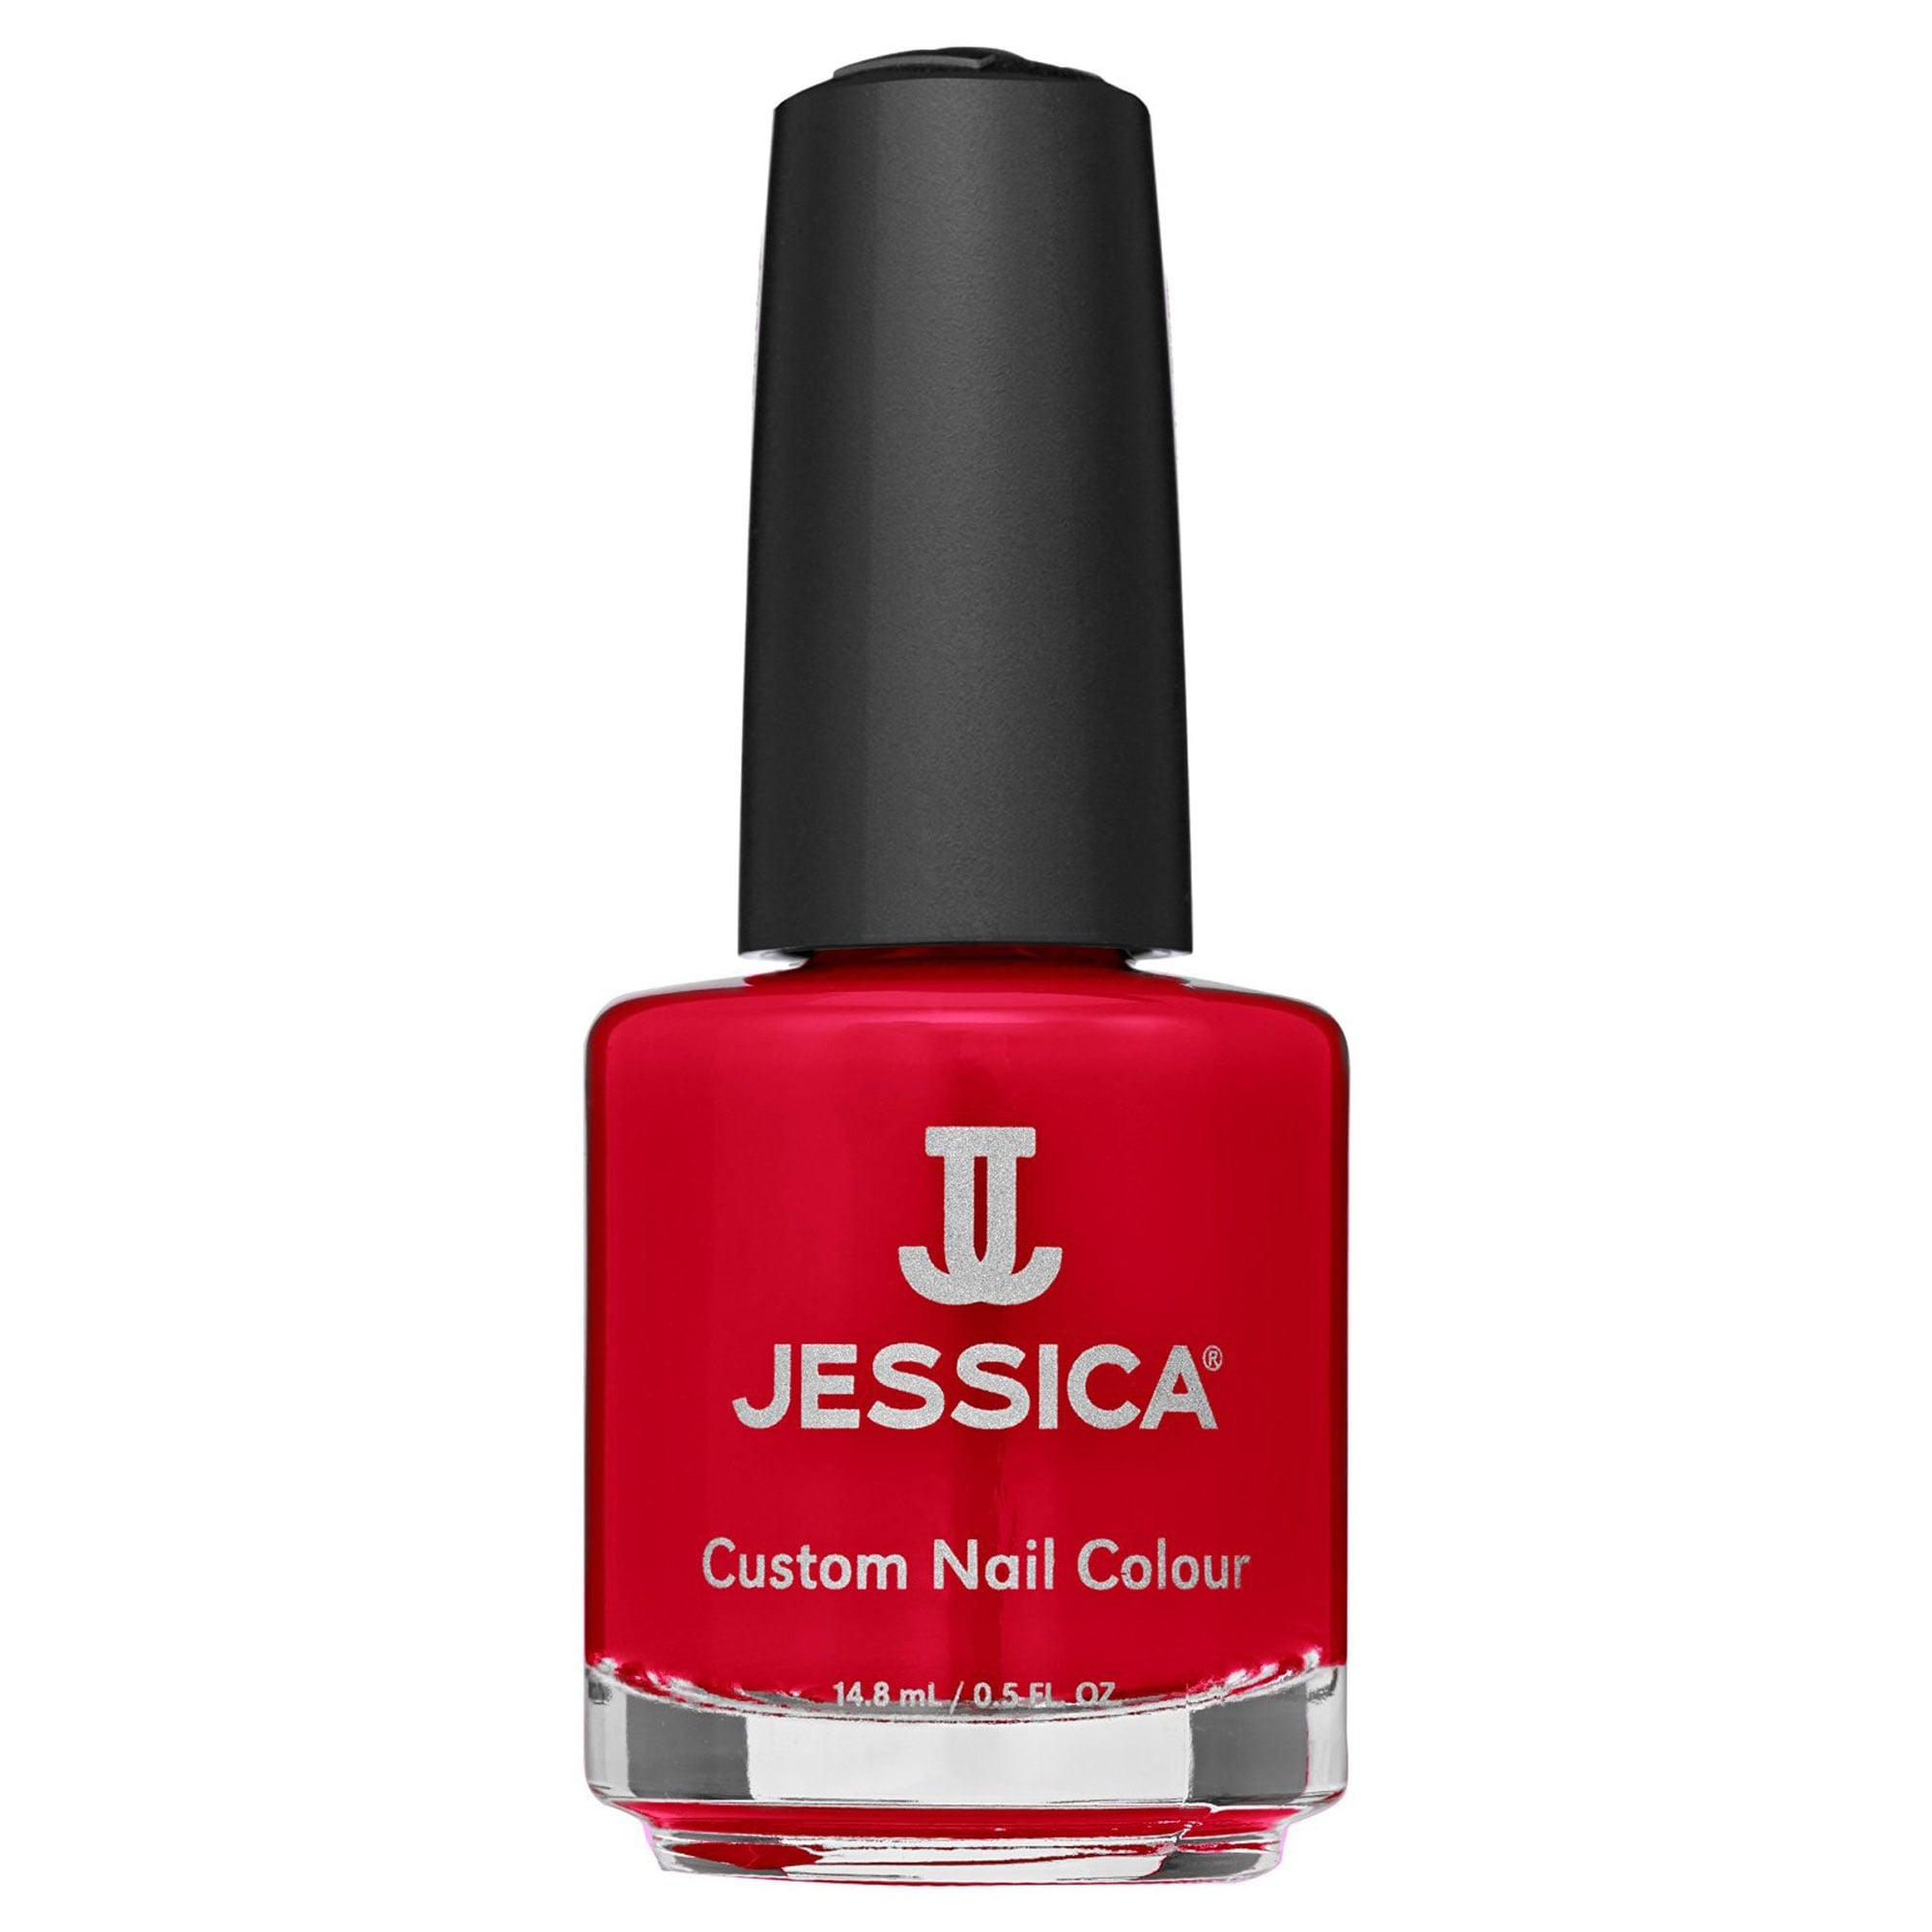 Jessica Nail Polish Collection Summer Neon Nails - Atomic Red (791)